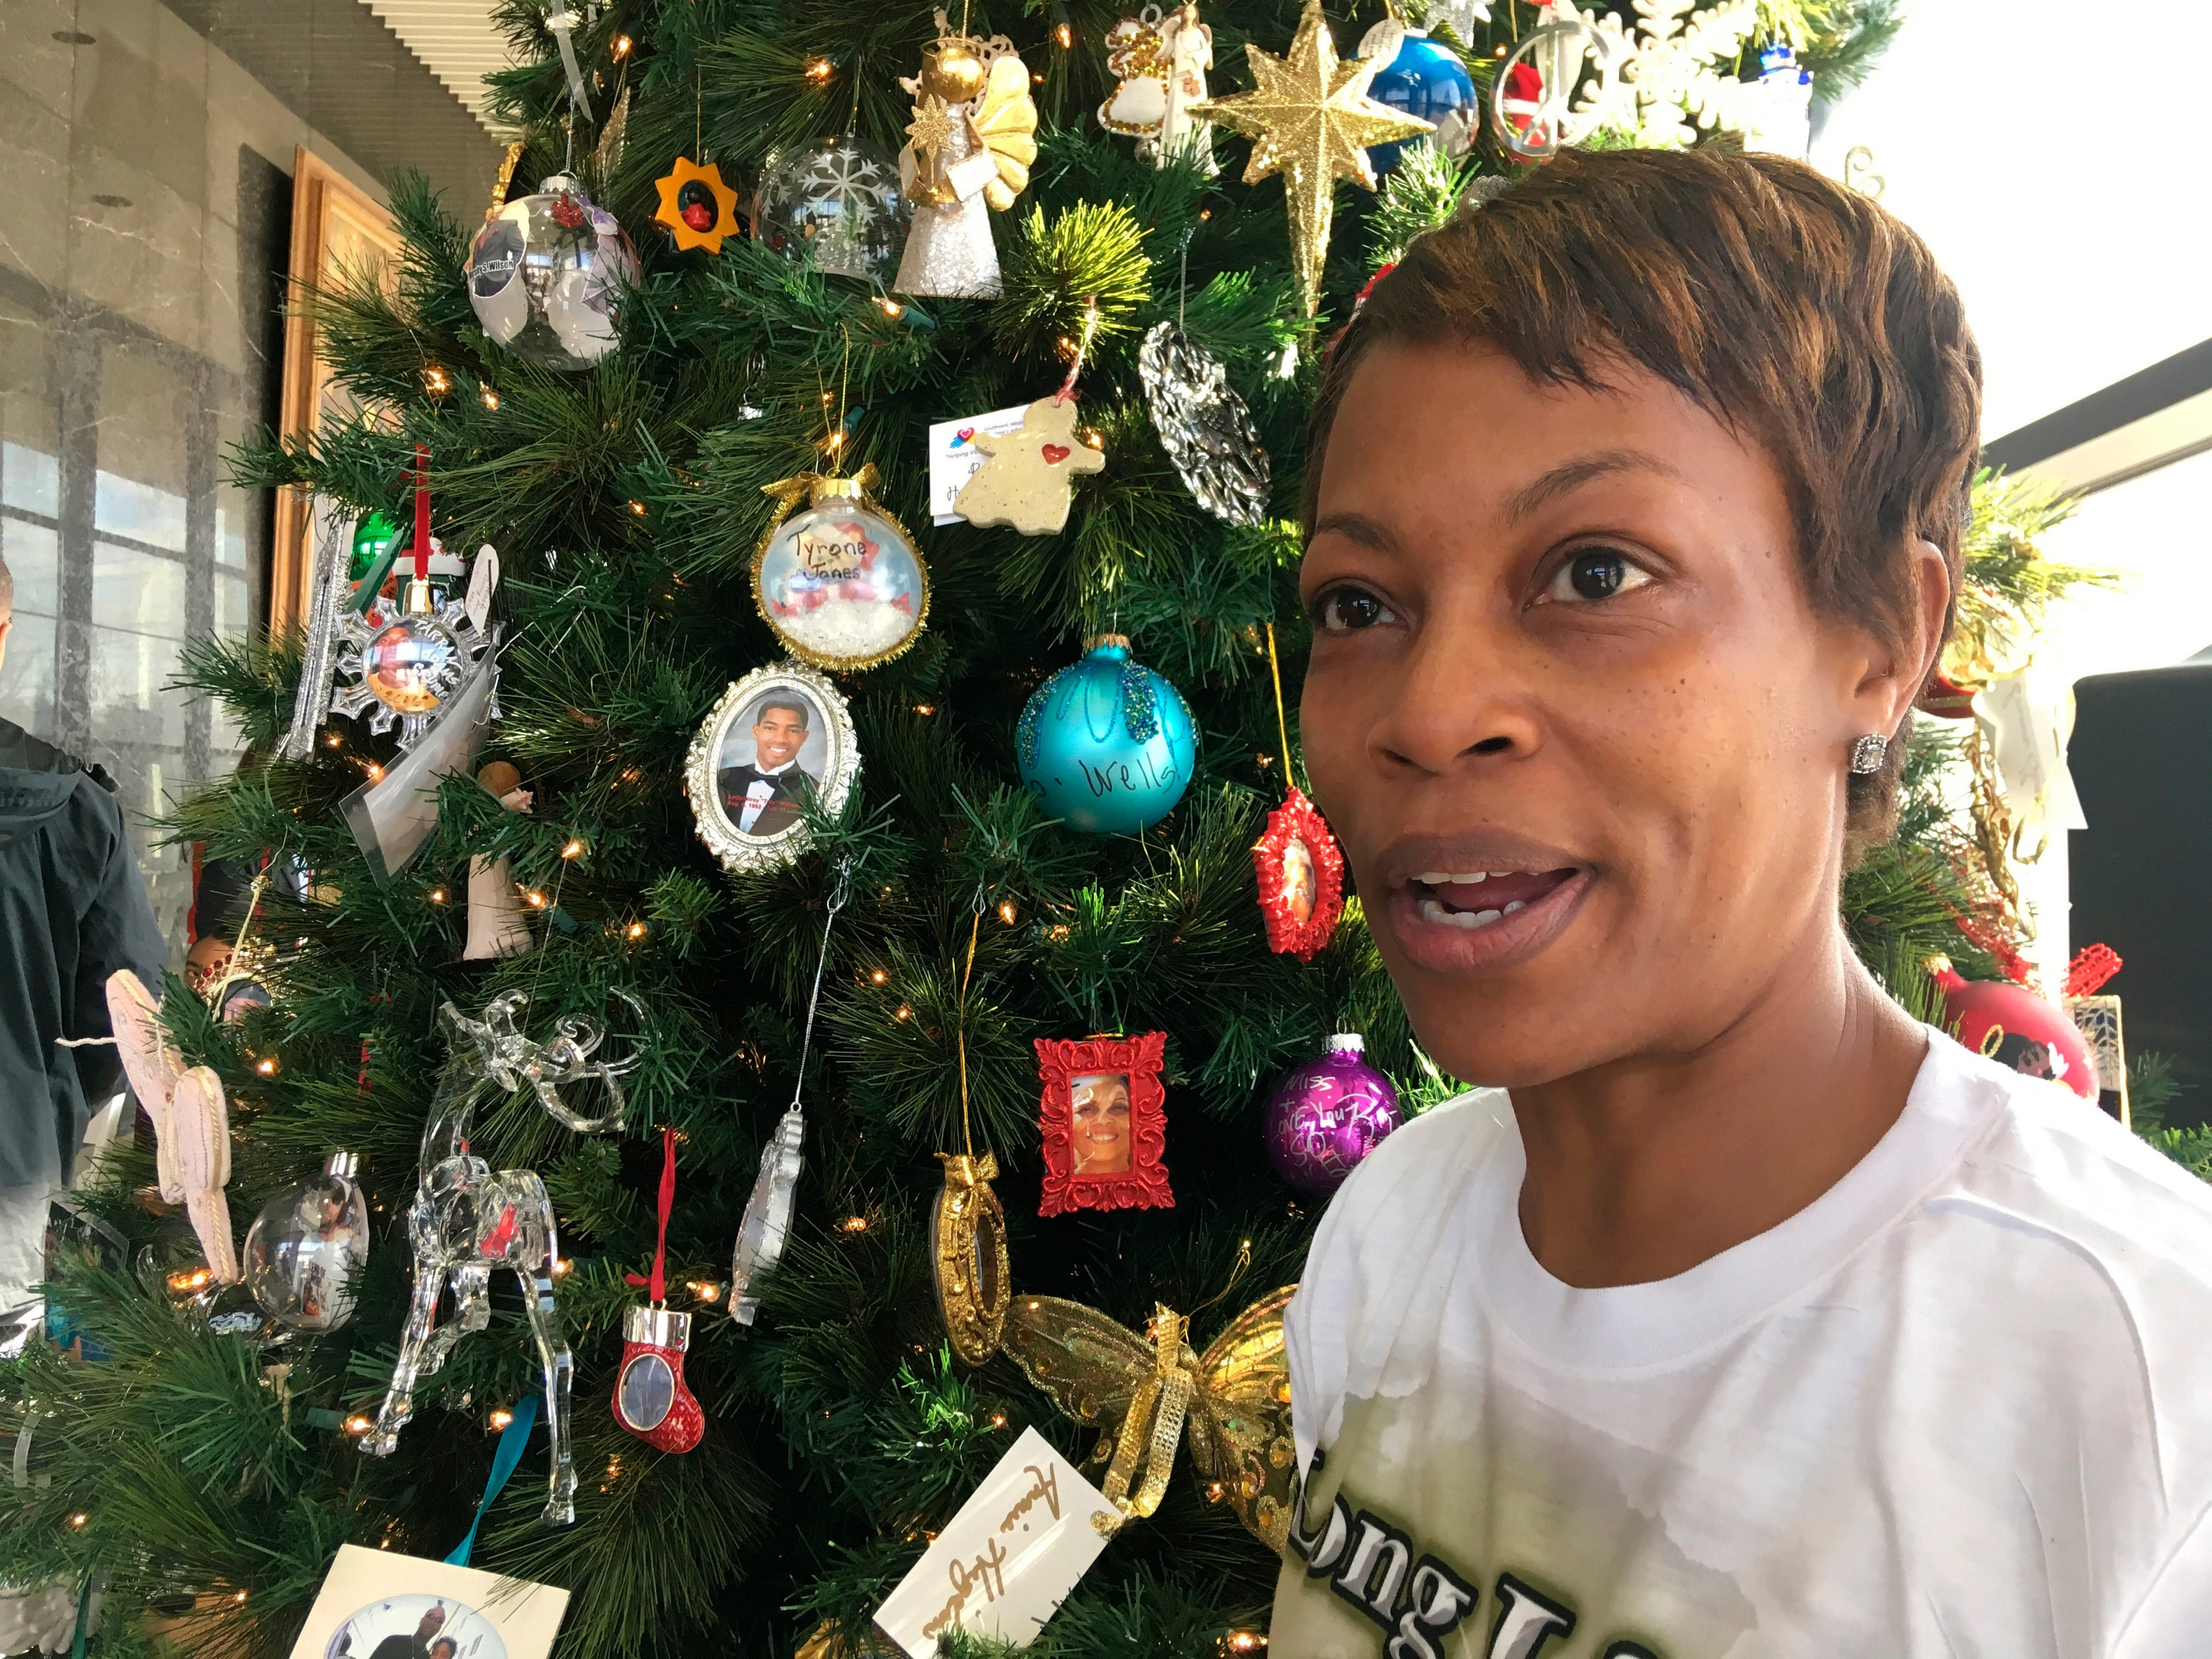 Lisa Donegan speaks in an interview after a tree-lighting ceremony in Jackson, Miss., Tuesday, Dec. 18, 2018. A Christmas tree in the Mississippi government building has been decorated to honor crime victims. The tree holds more than 600 ornaments with photos of crime victims including her son.